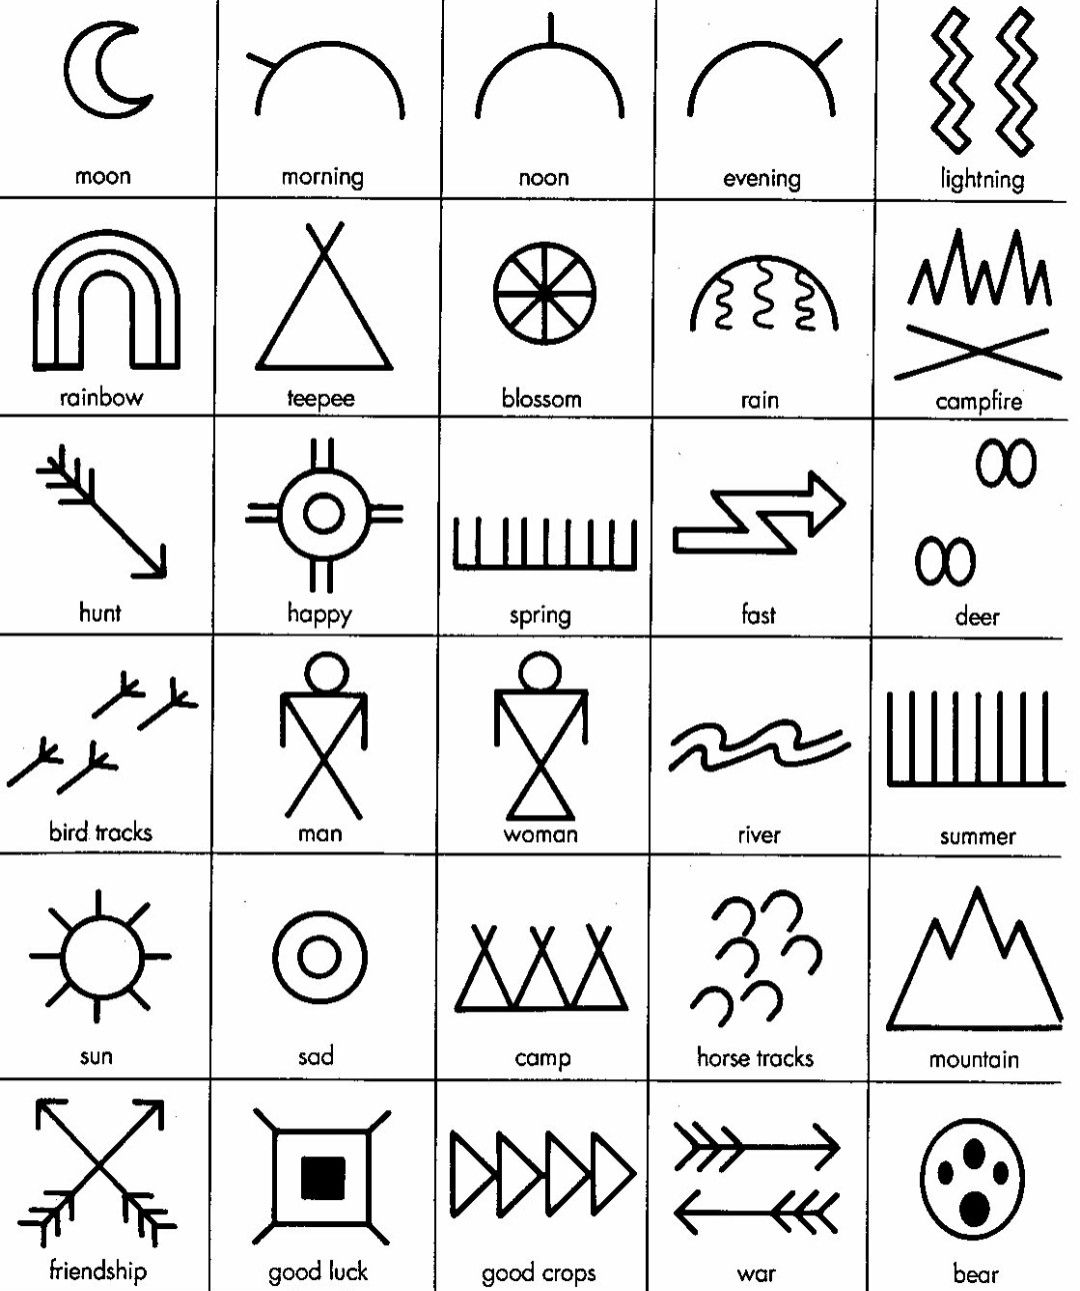 Yaqui indian symbols image collections symbol and sign ideas lenni lenape symbols choice image symbol and sign ideas pin by itslyssaleigh on native american first buycottarizona